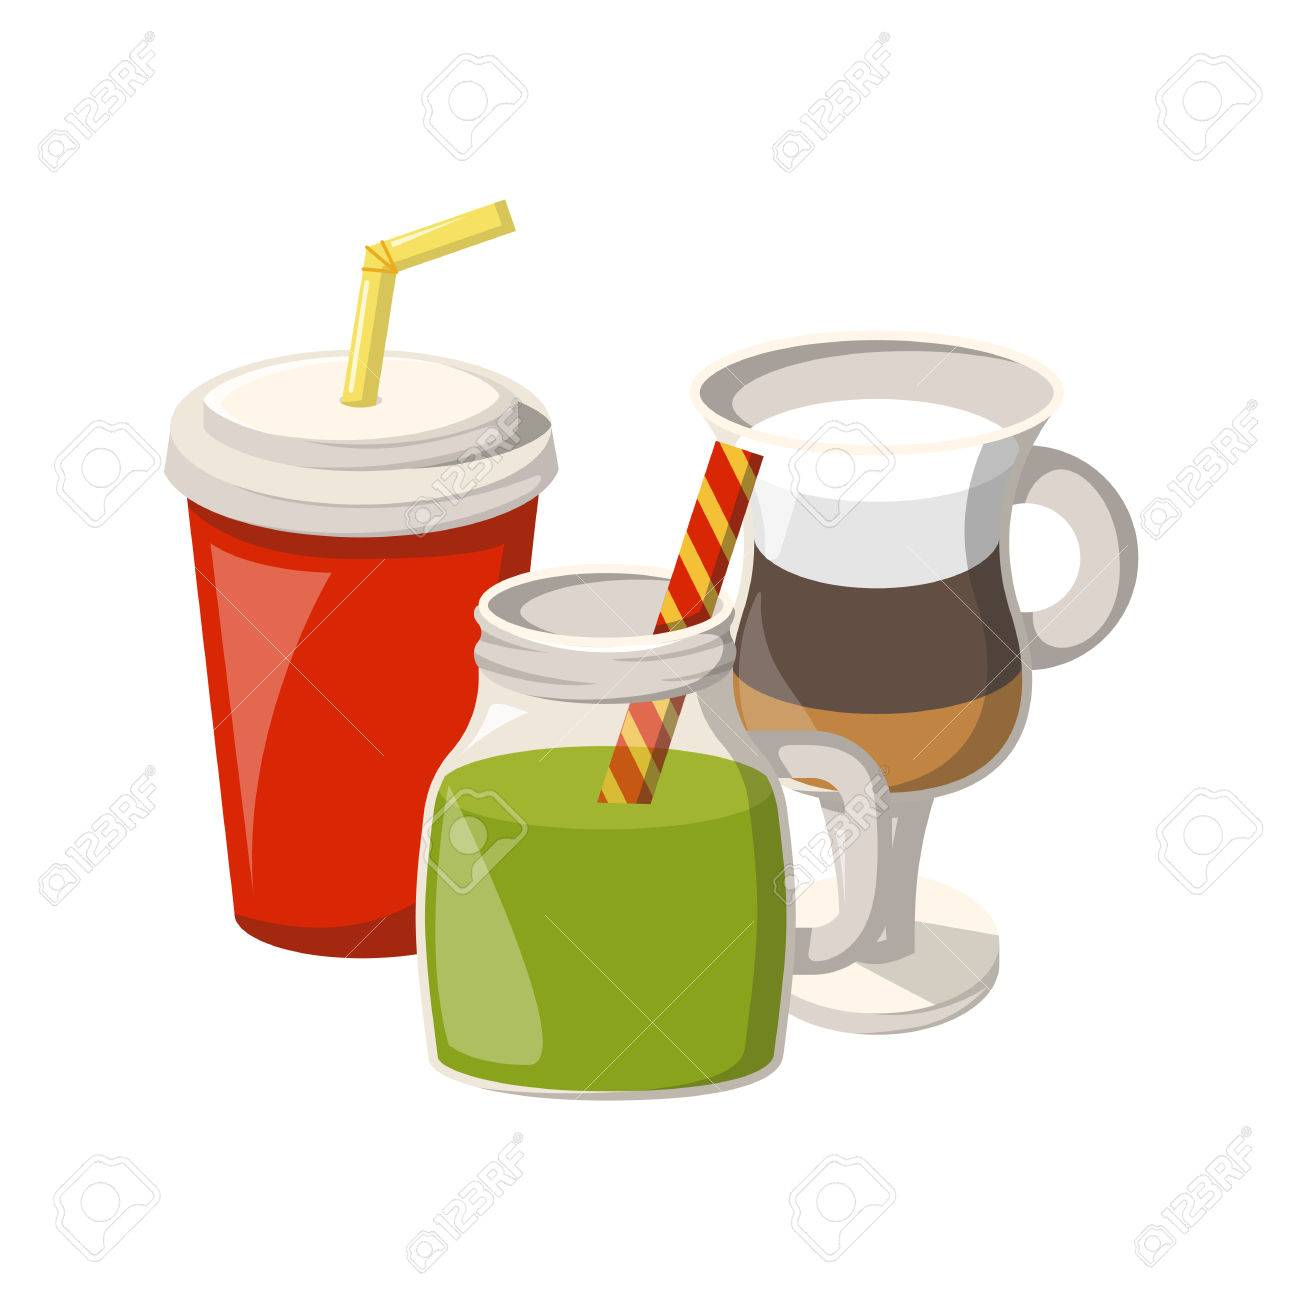 vector illustration with cartoon non alcoholic beverages icons rh 123rf com cartoon drinking game cartoon drink images